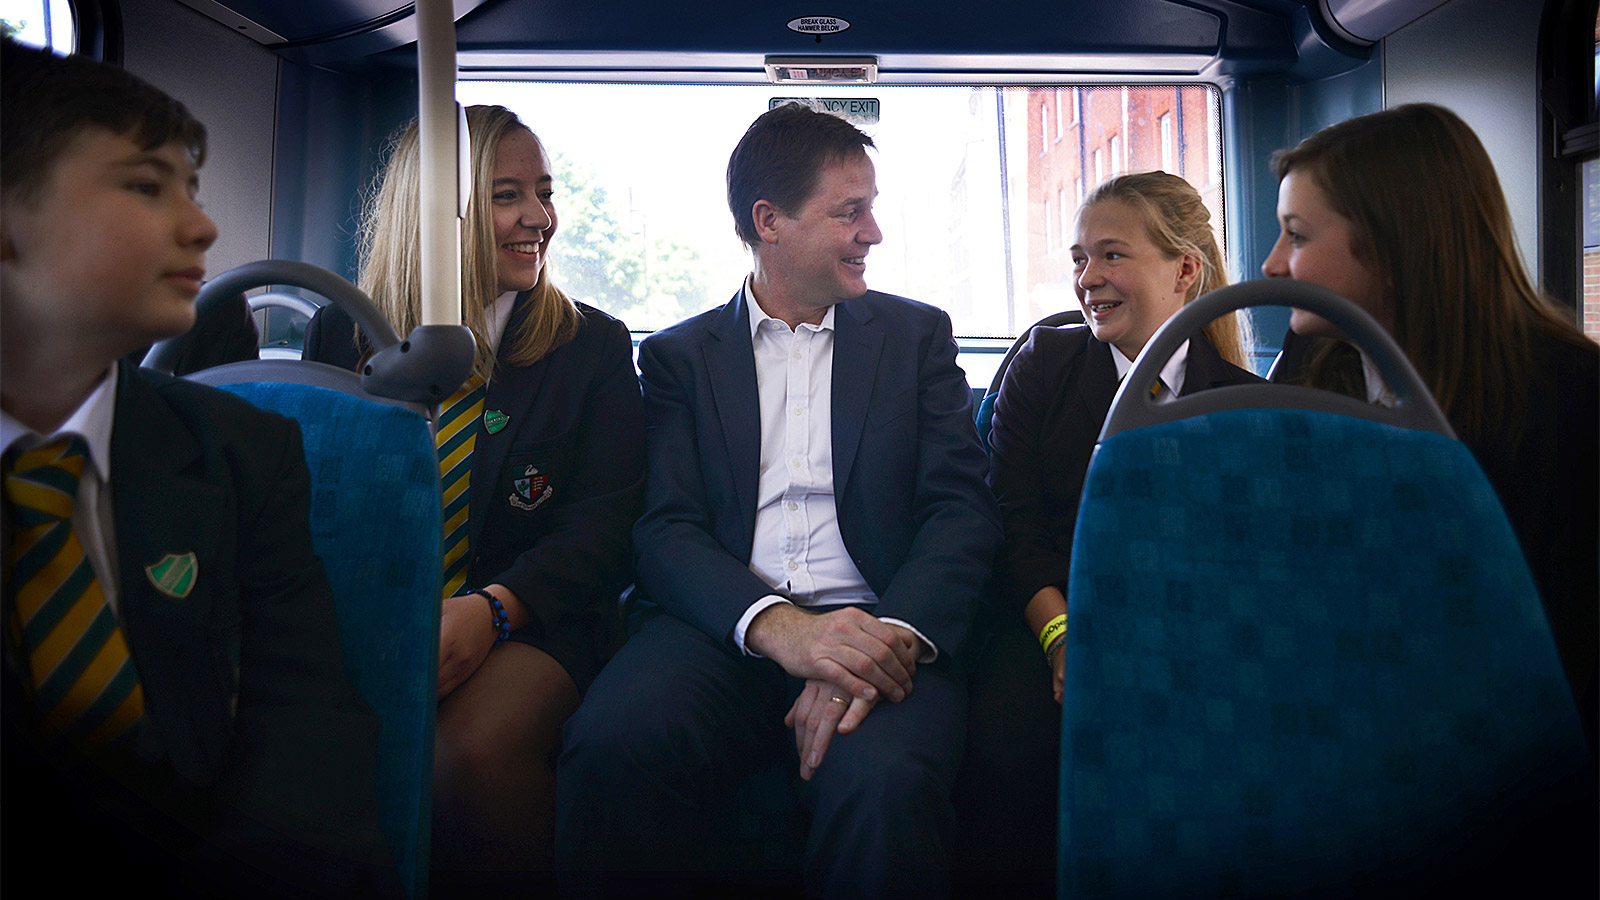 content_clegg_education_copy.jpg